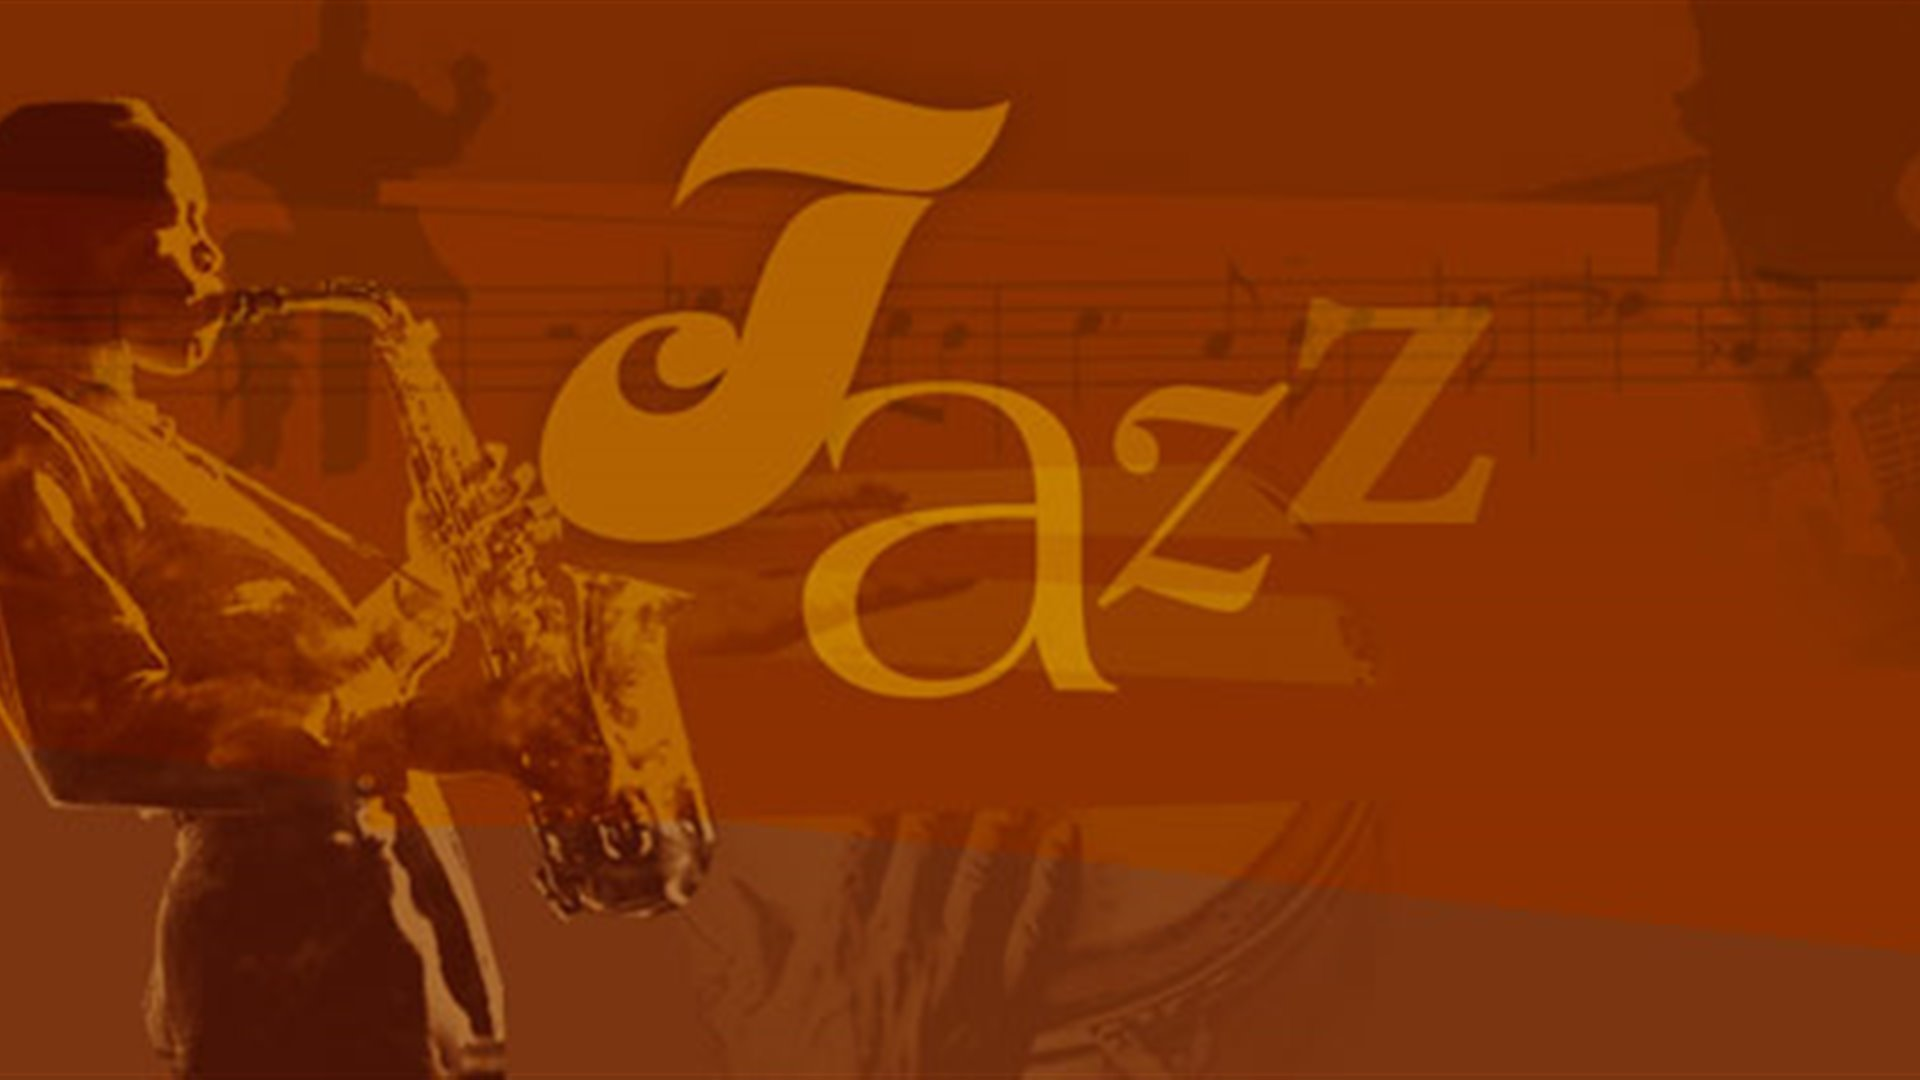 Jazz and the tango